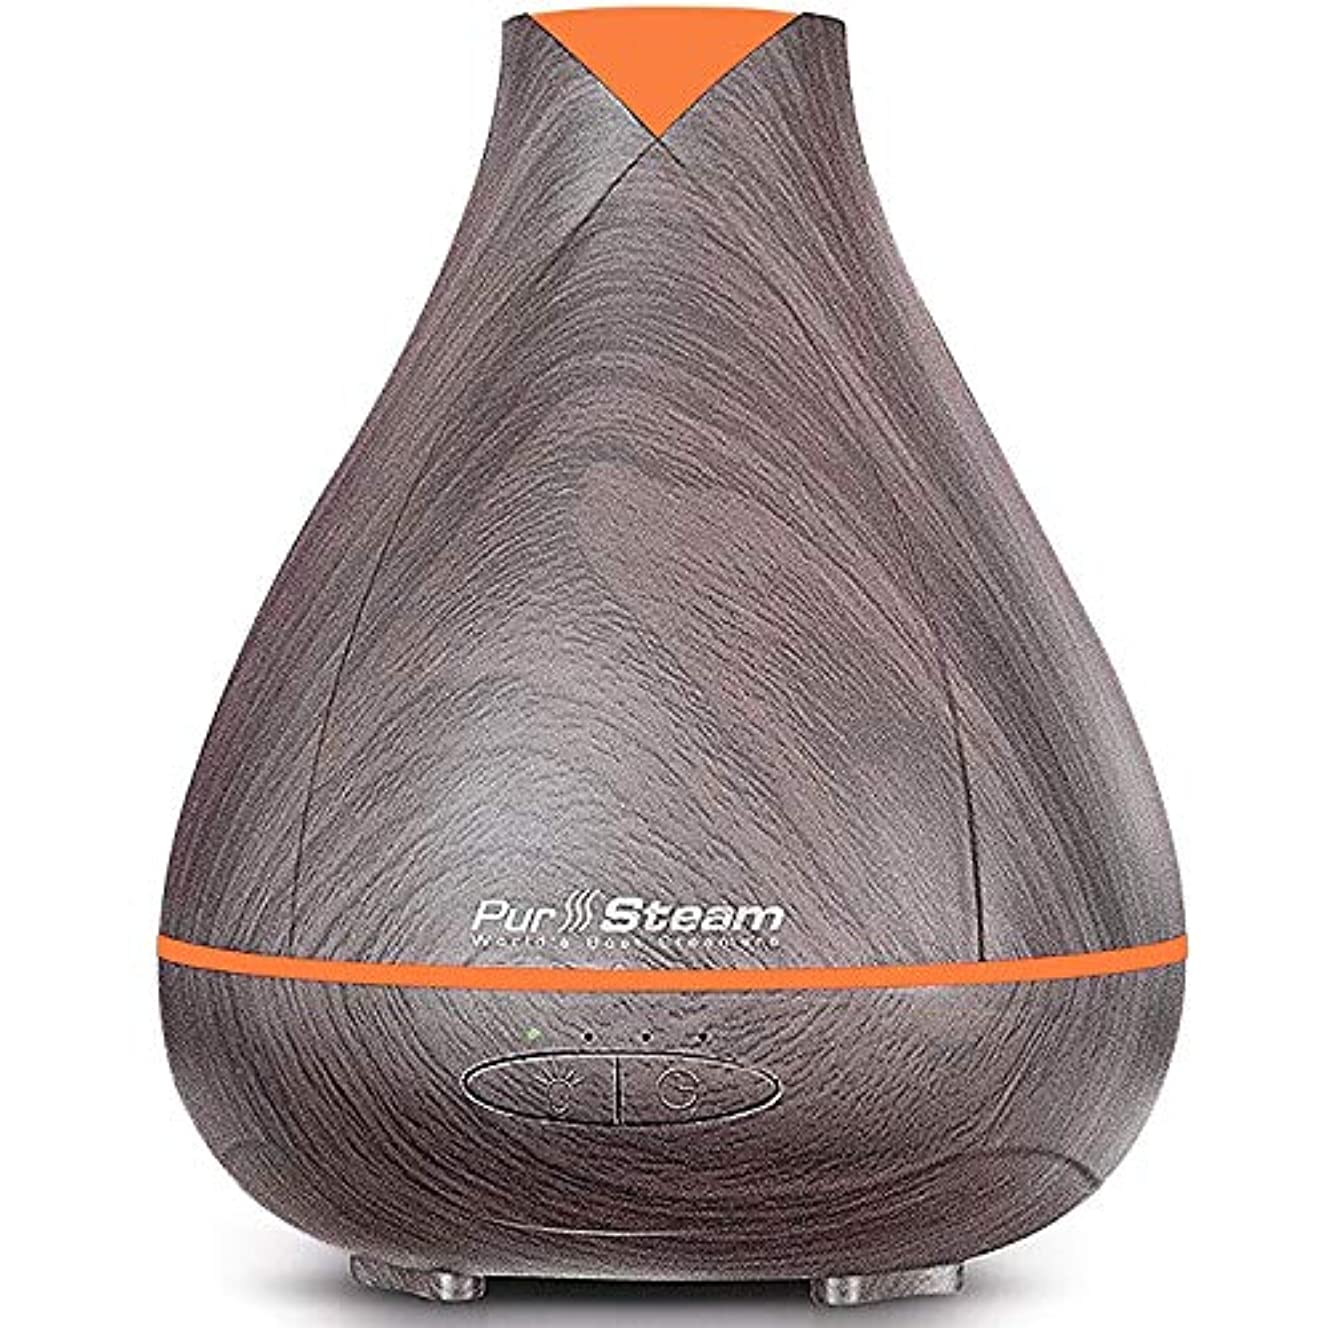 PurSteam Essential Oil Diffuser, Wood Grain Aromatherapy Diffuser Ultrasonic Cool Mist Humidifier with Color LED...